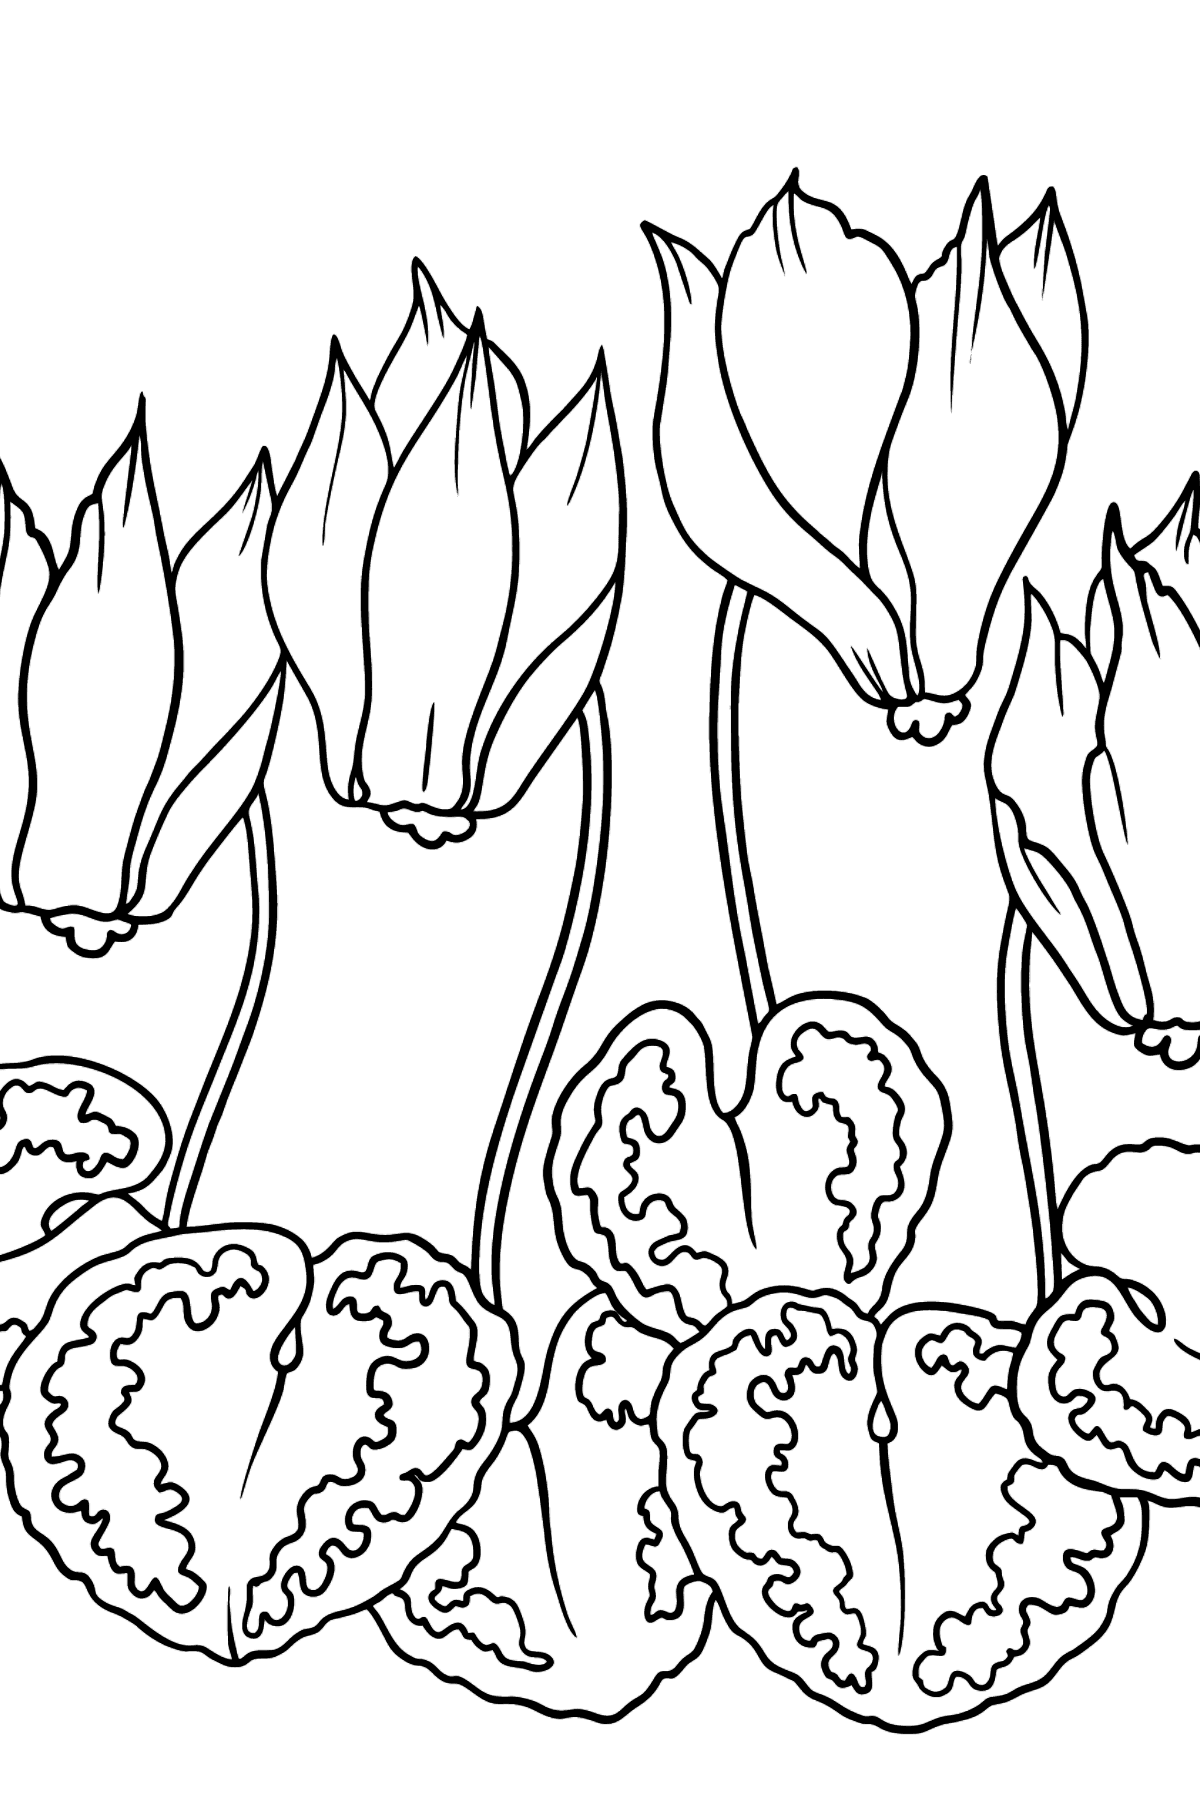 Flower Coloring Page - A Bright Pink Cyclamen - Coloring Pages for Kids